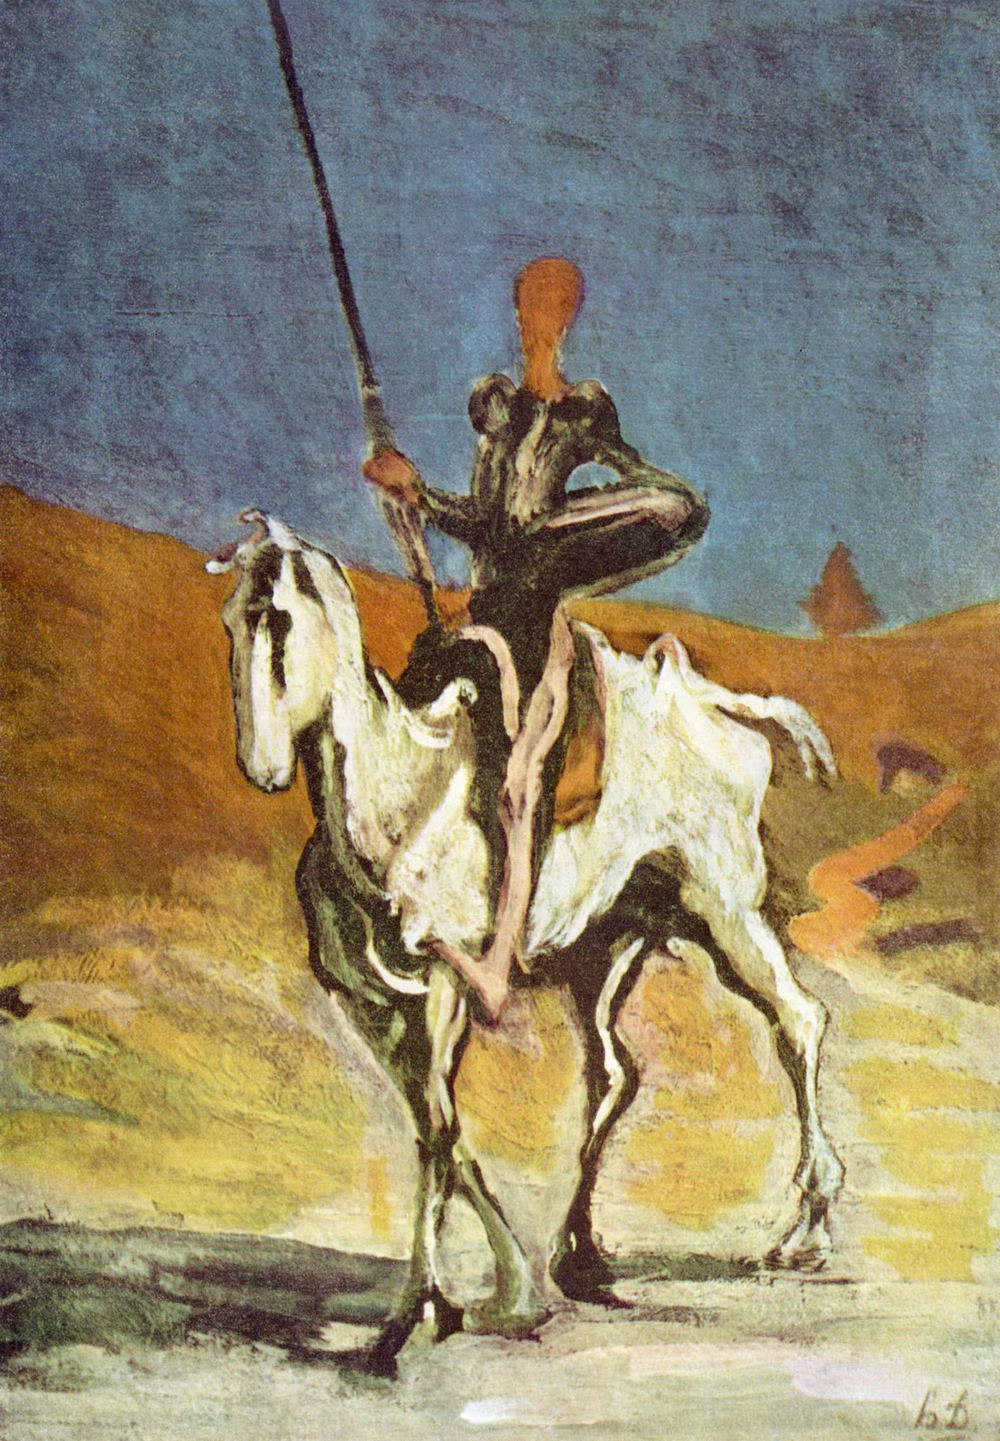 Don Quixote and Sancho Panza, a painting by Honoré Daumier created circa 1868. PD Source: Wikimedia Commons